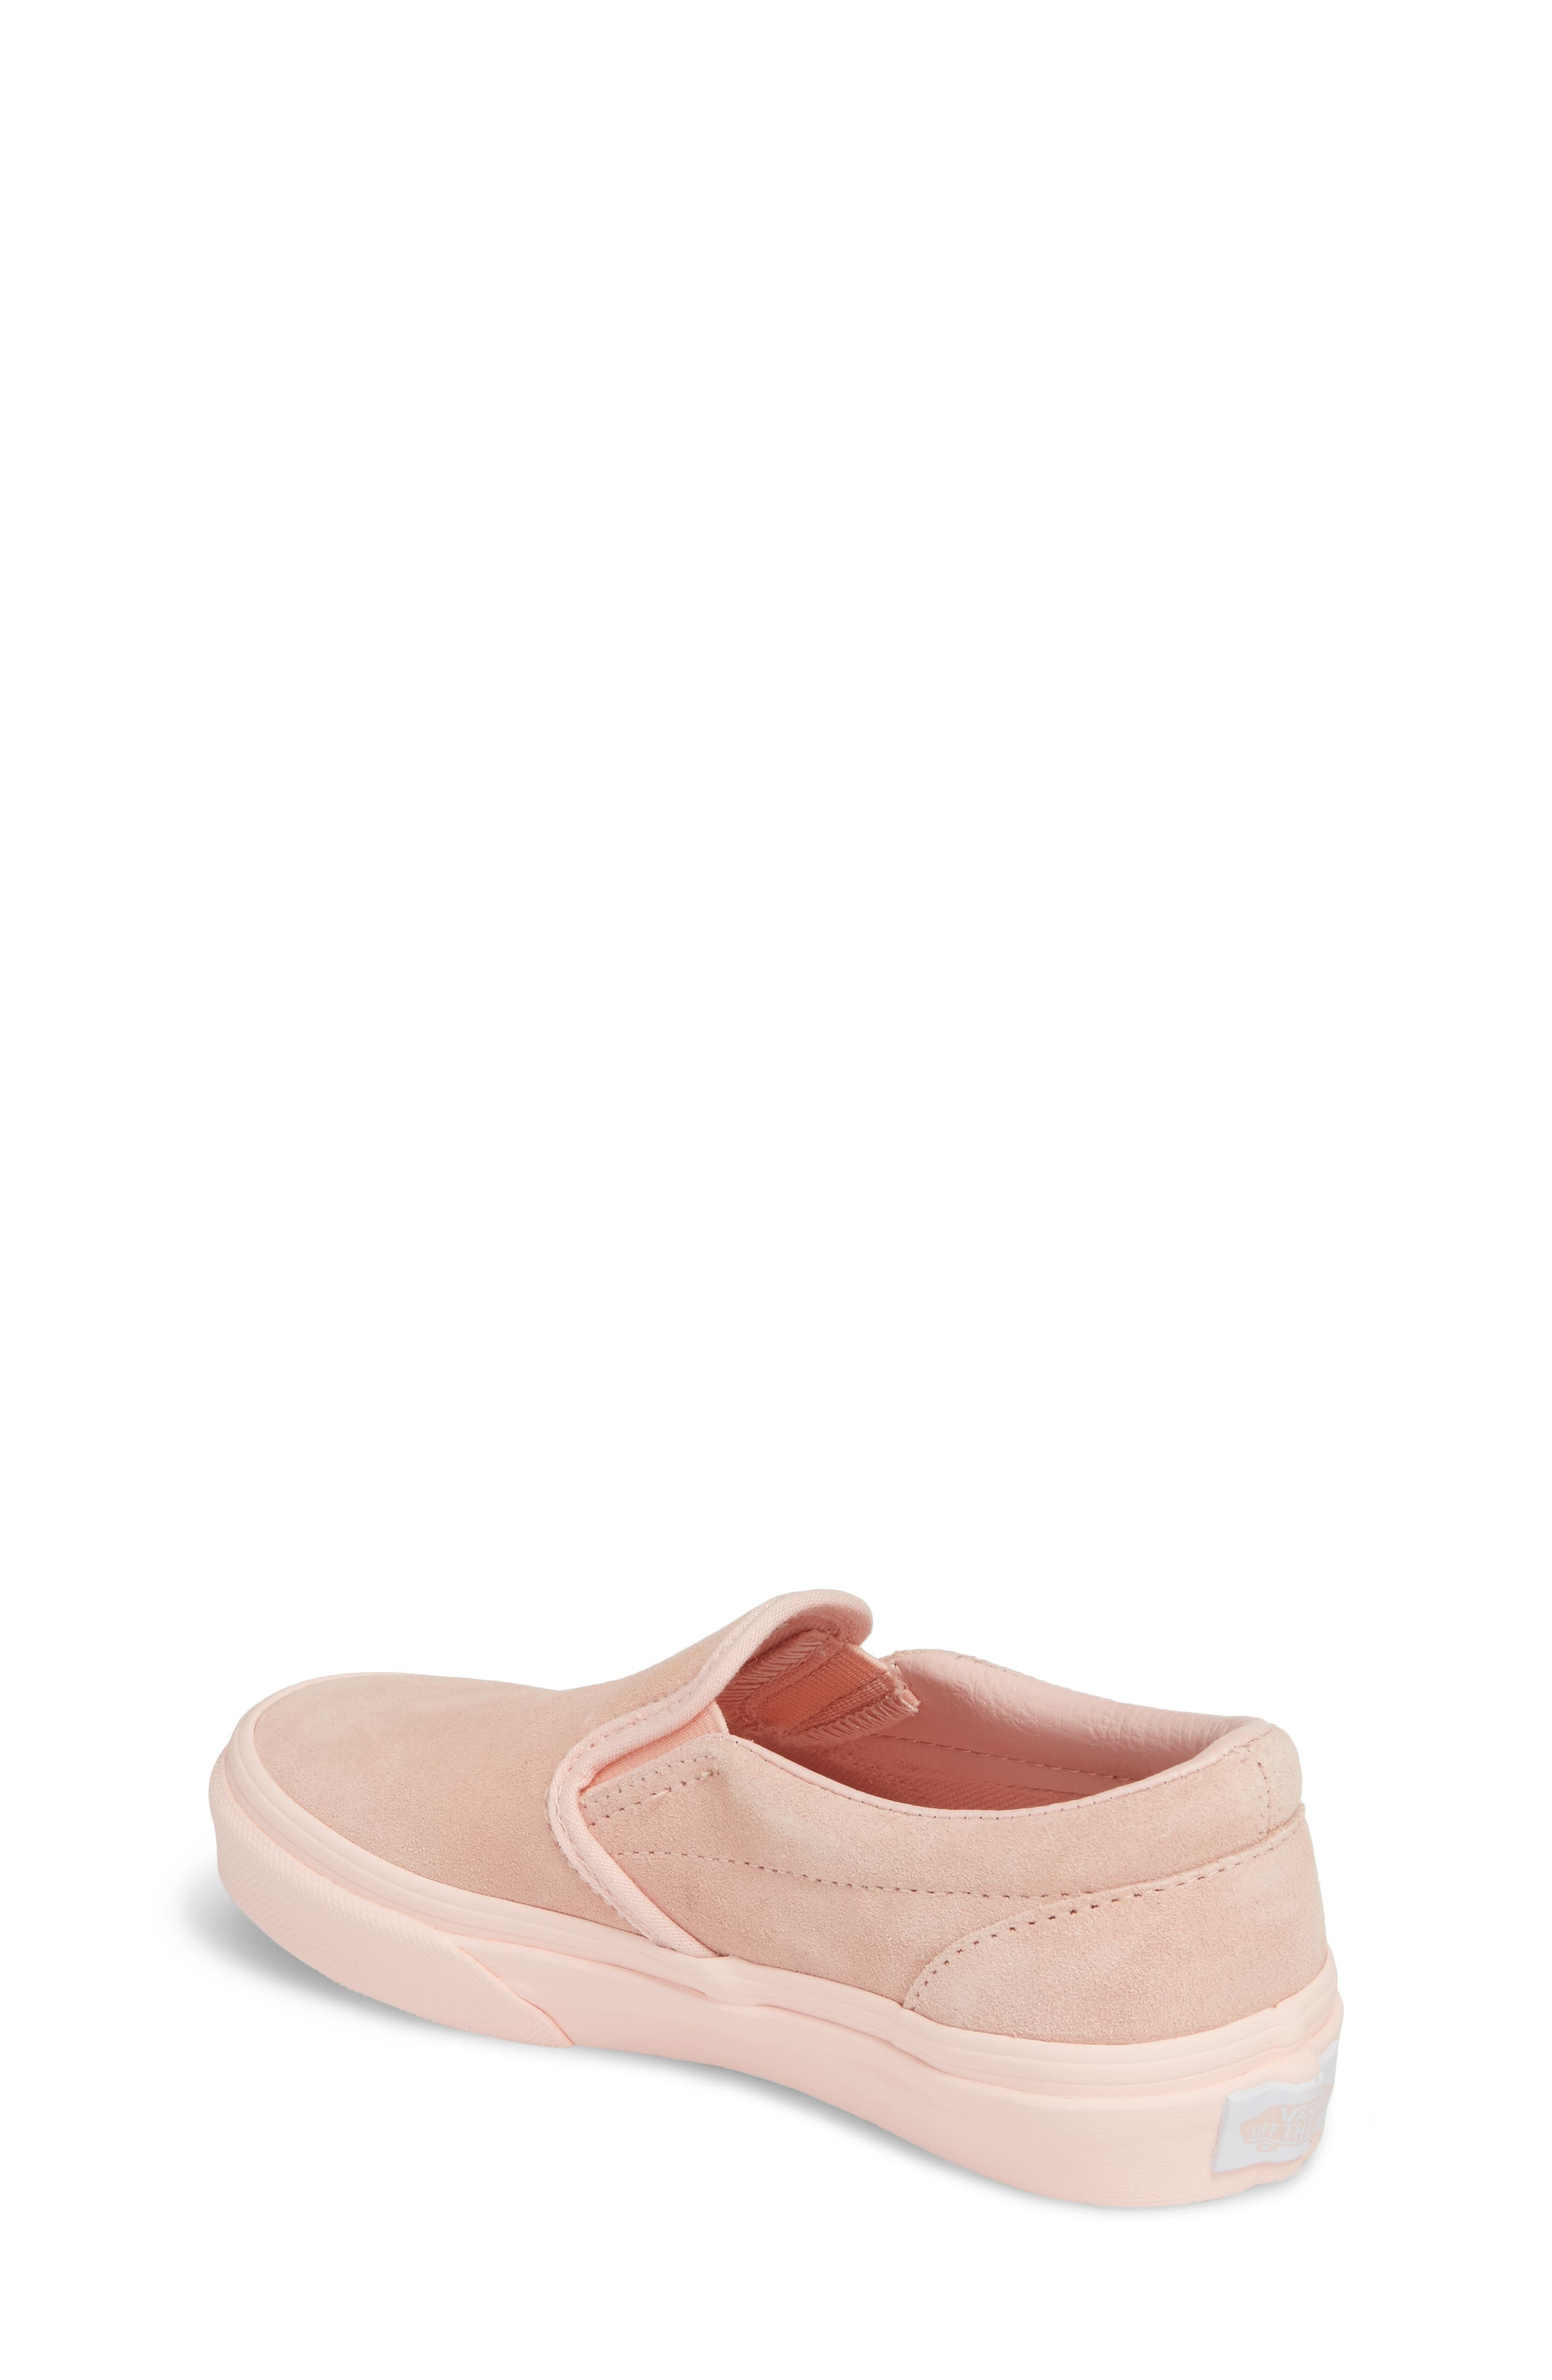 Classic Slip-On Sneaker,                             Alternate thumbnail 2, color,